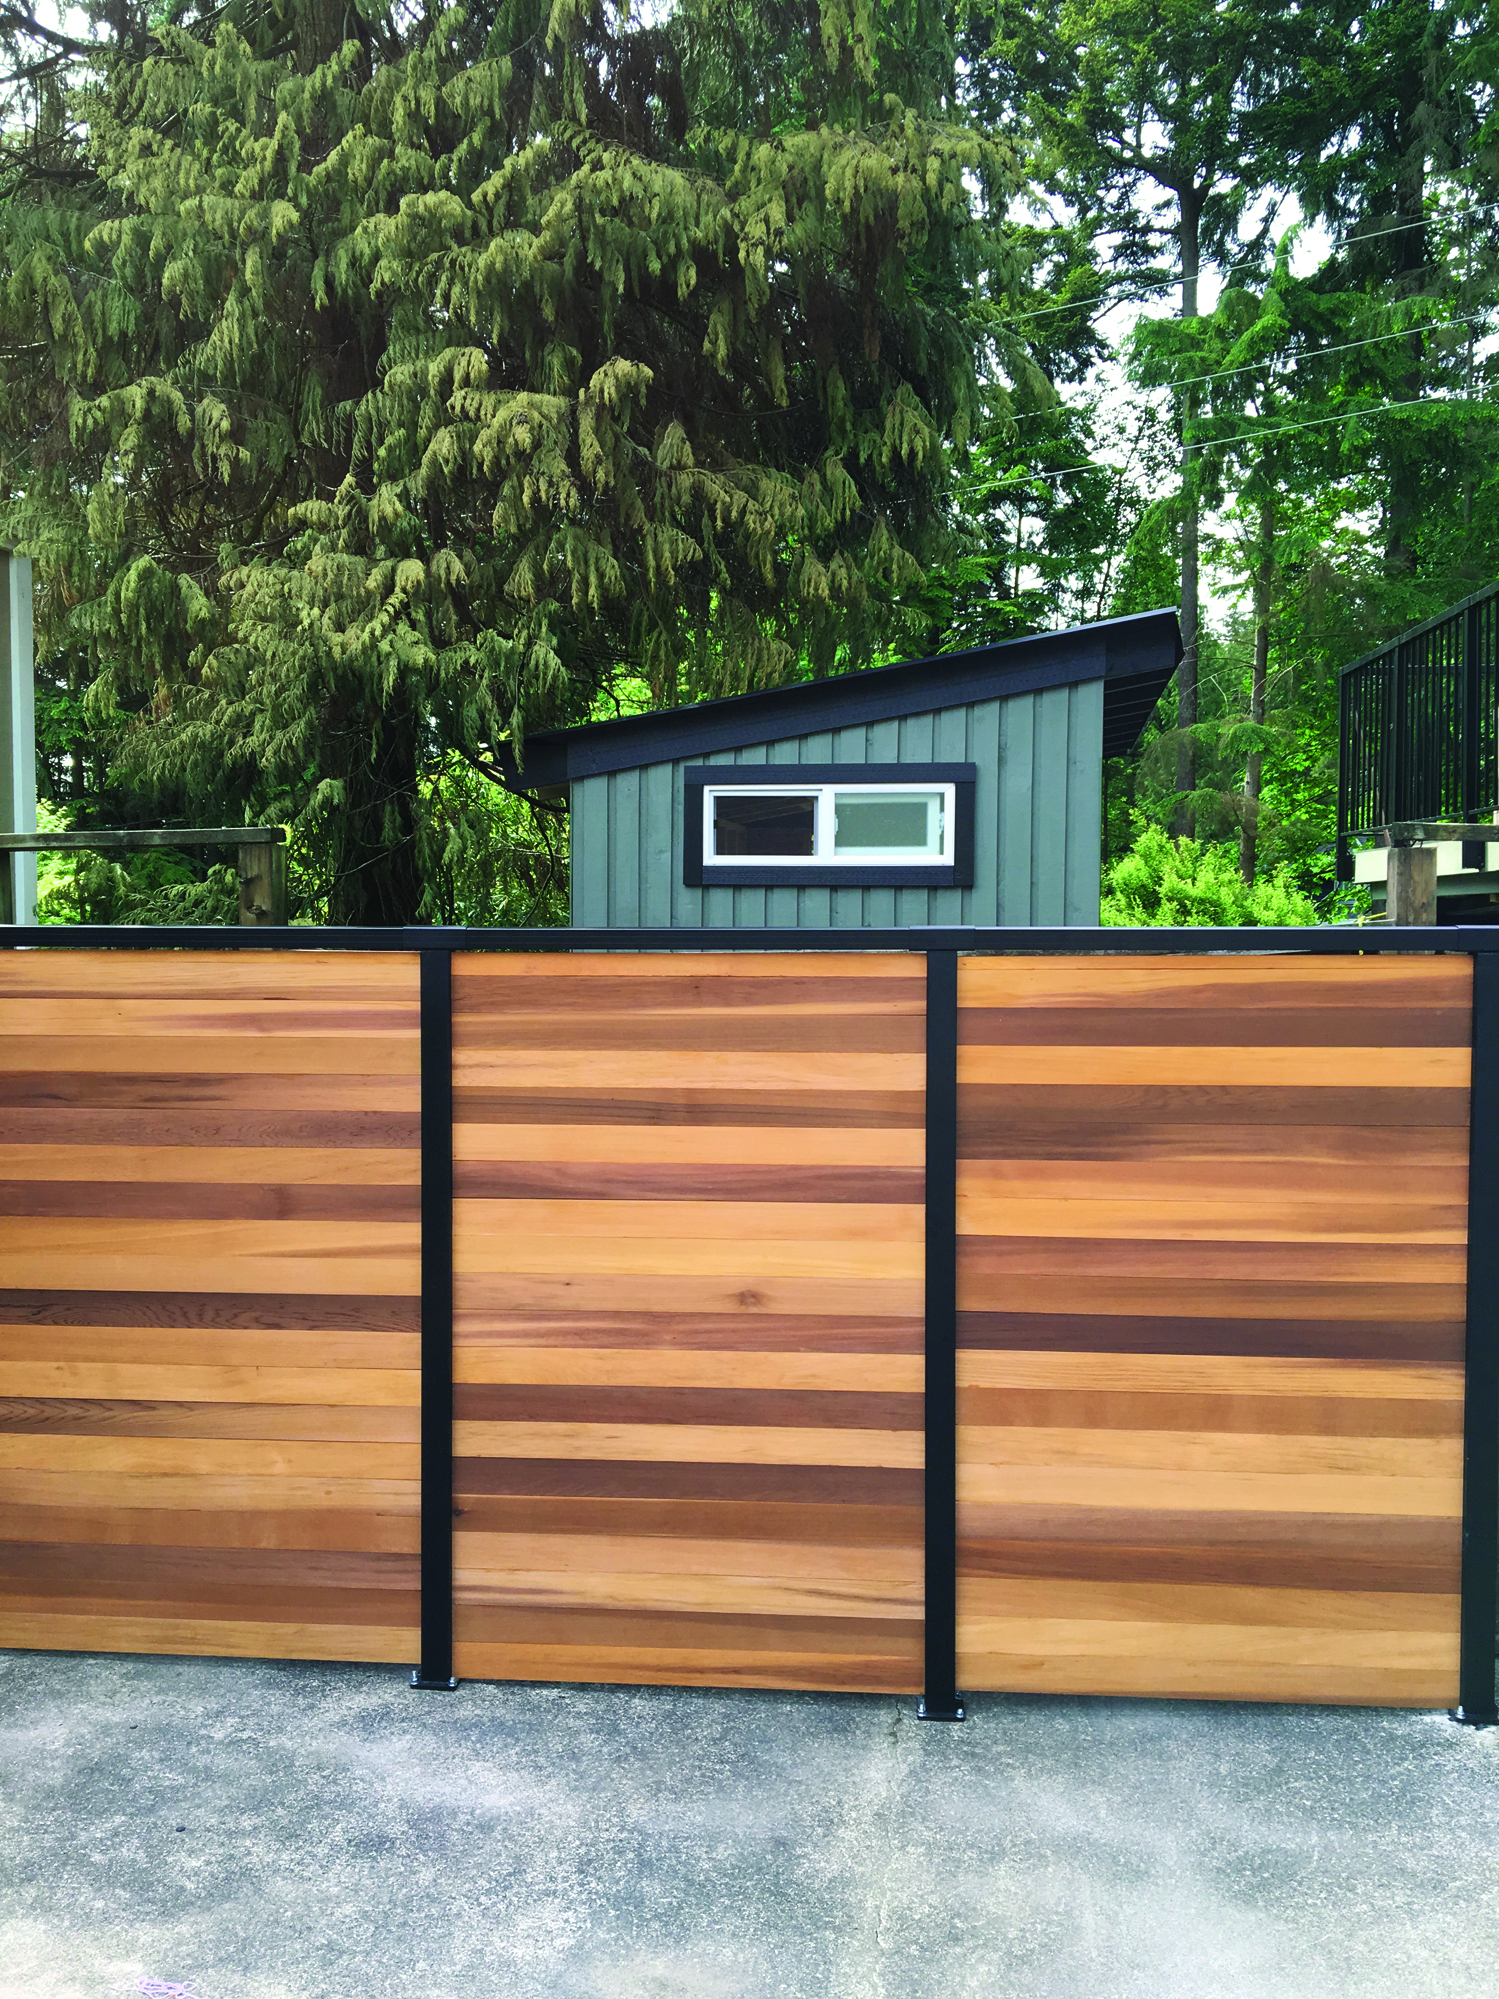 China Aluminum Solid Powder Coated Black Infilled Wall Panels Garden Privacy Decorative Modular Slat Fence China Aluminum Fence And Privacy Fence Price